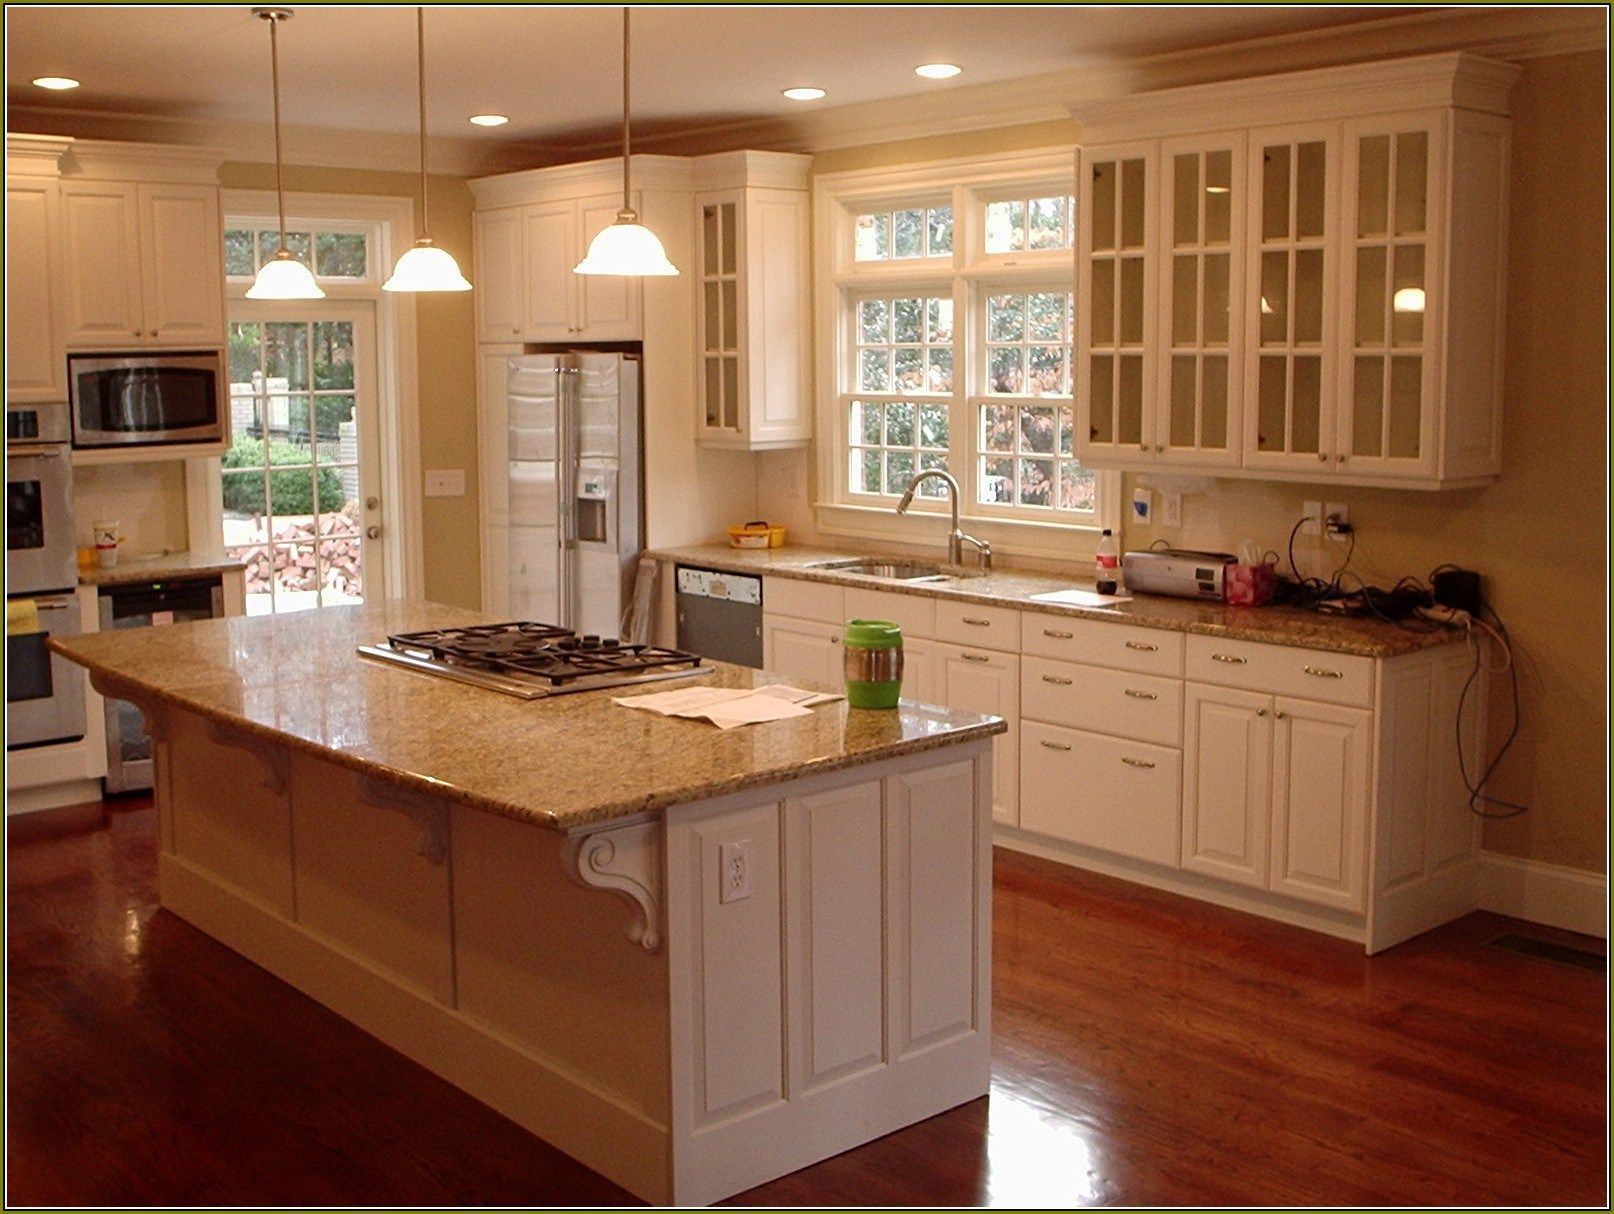 Home Depot Kitchen Cabinets Home Design Ideas Refacing Refinishing New How Much Does It Cost To Replace Kitchen Cabinets Decorating Inspiration